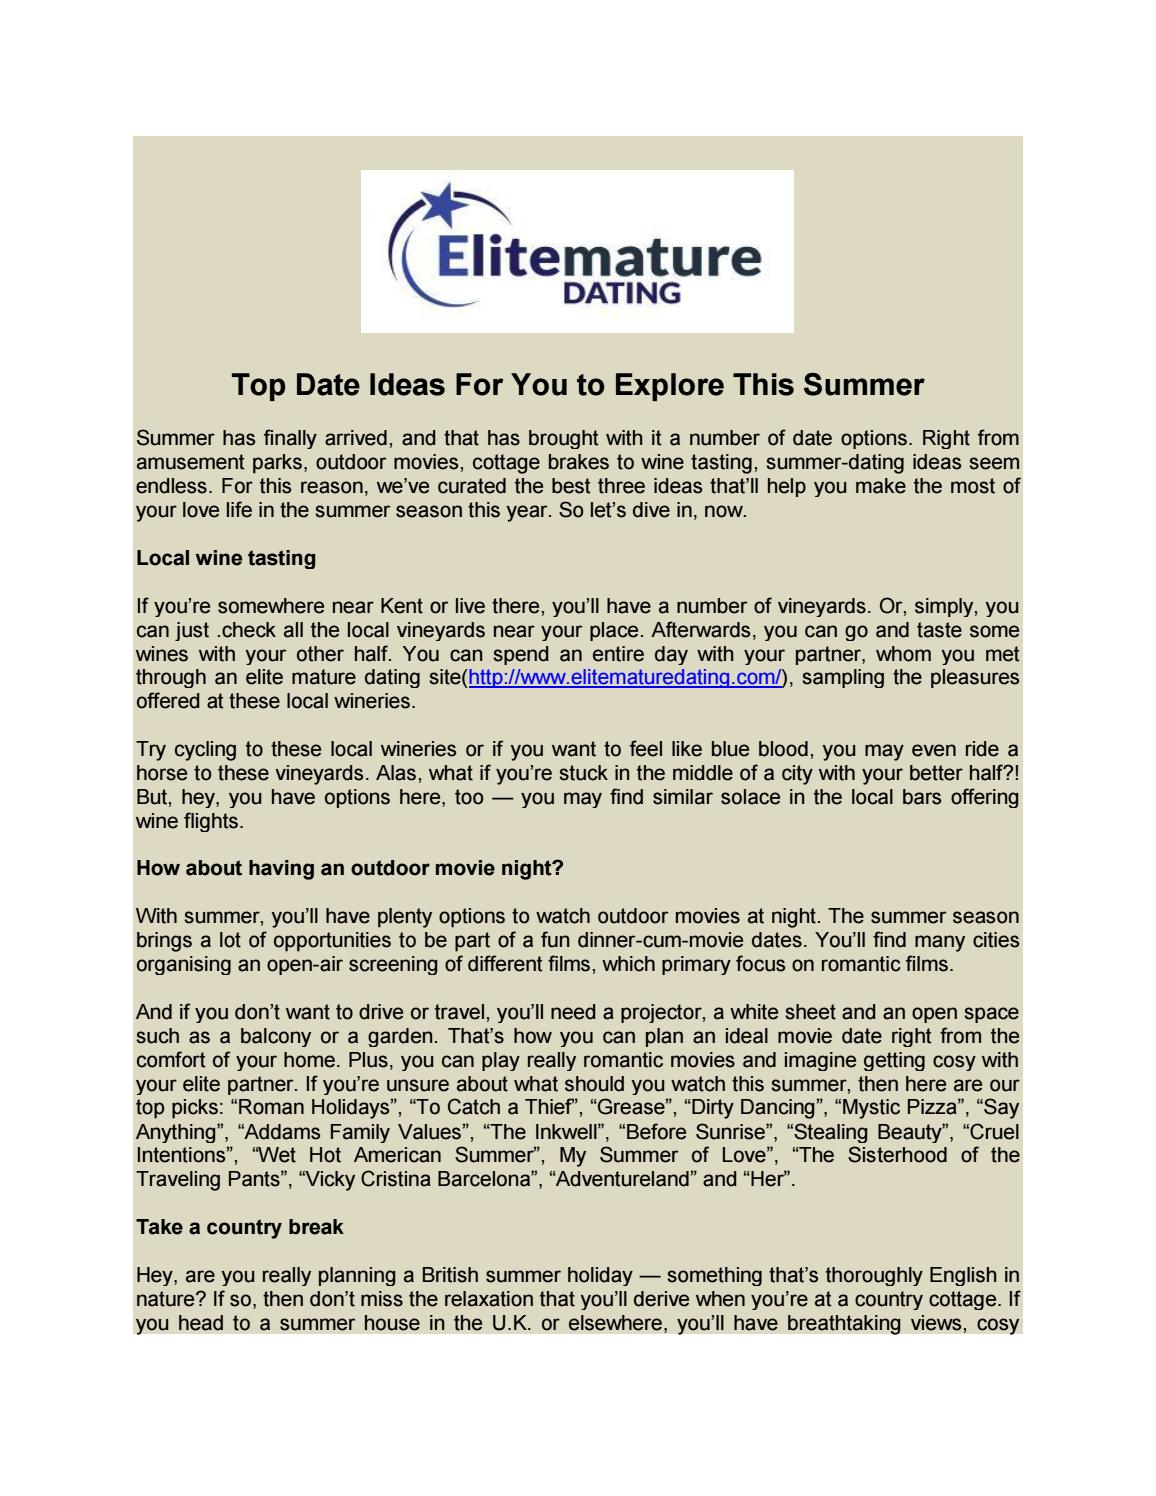 top date ideas for you to explore this summer by elitematuredating